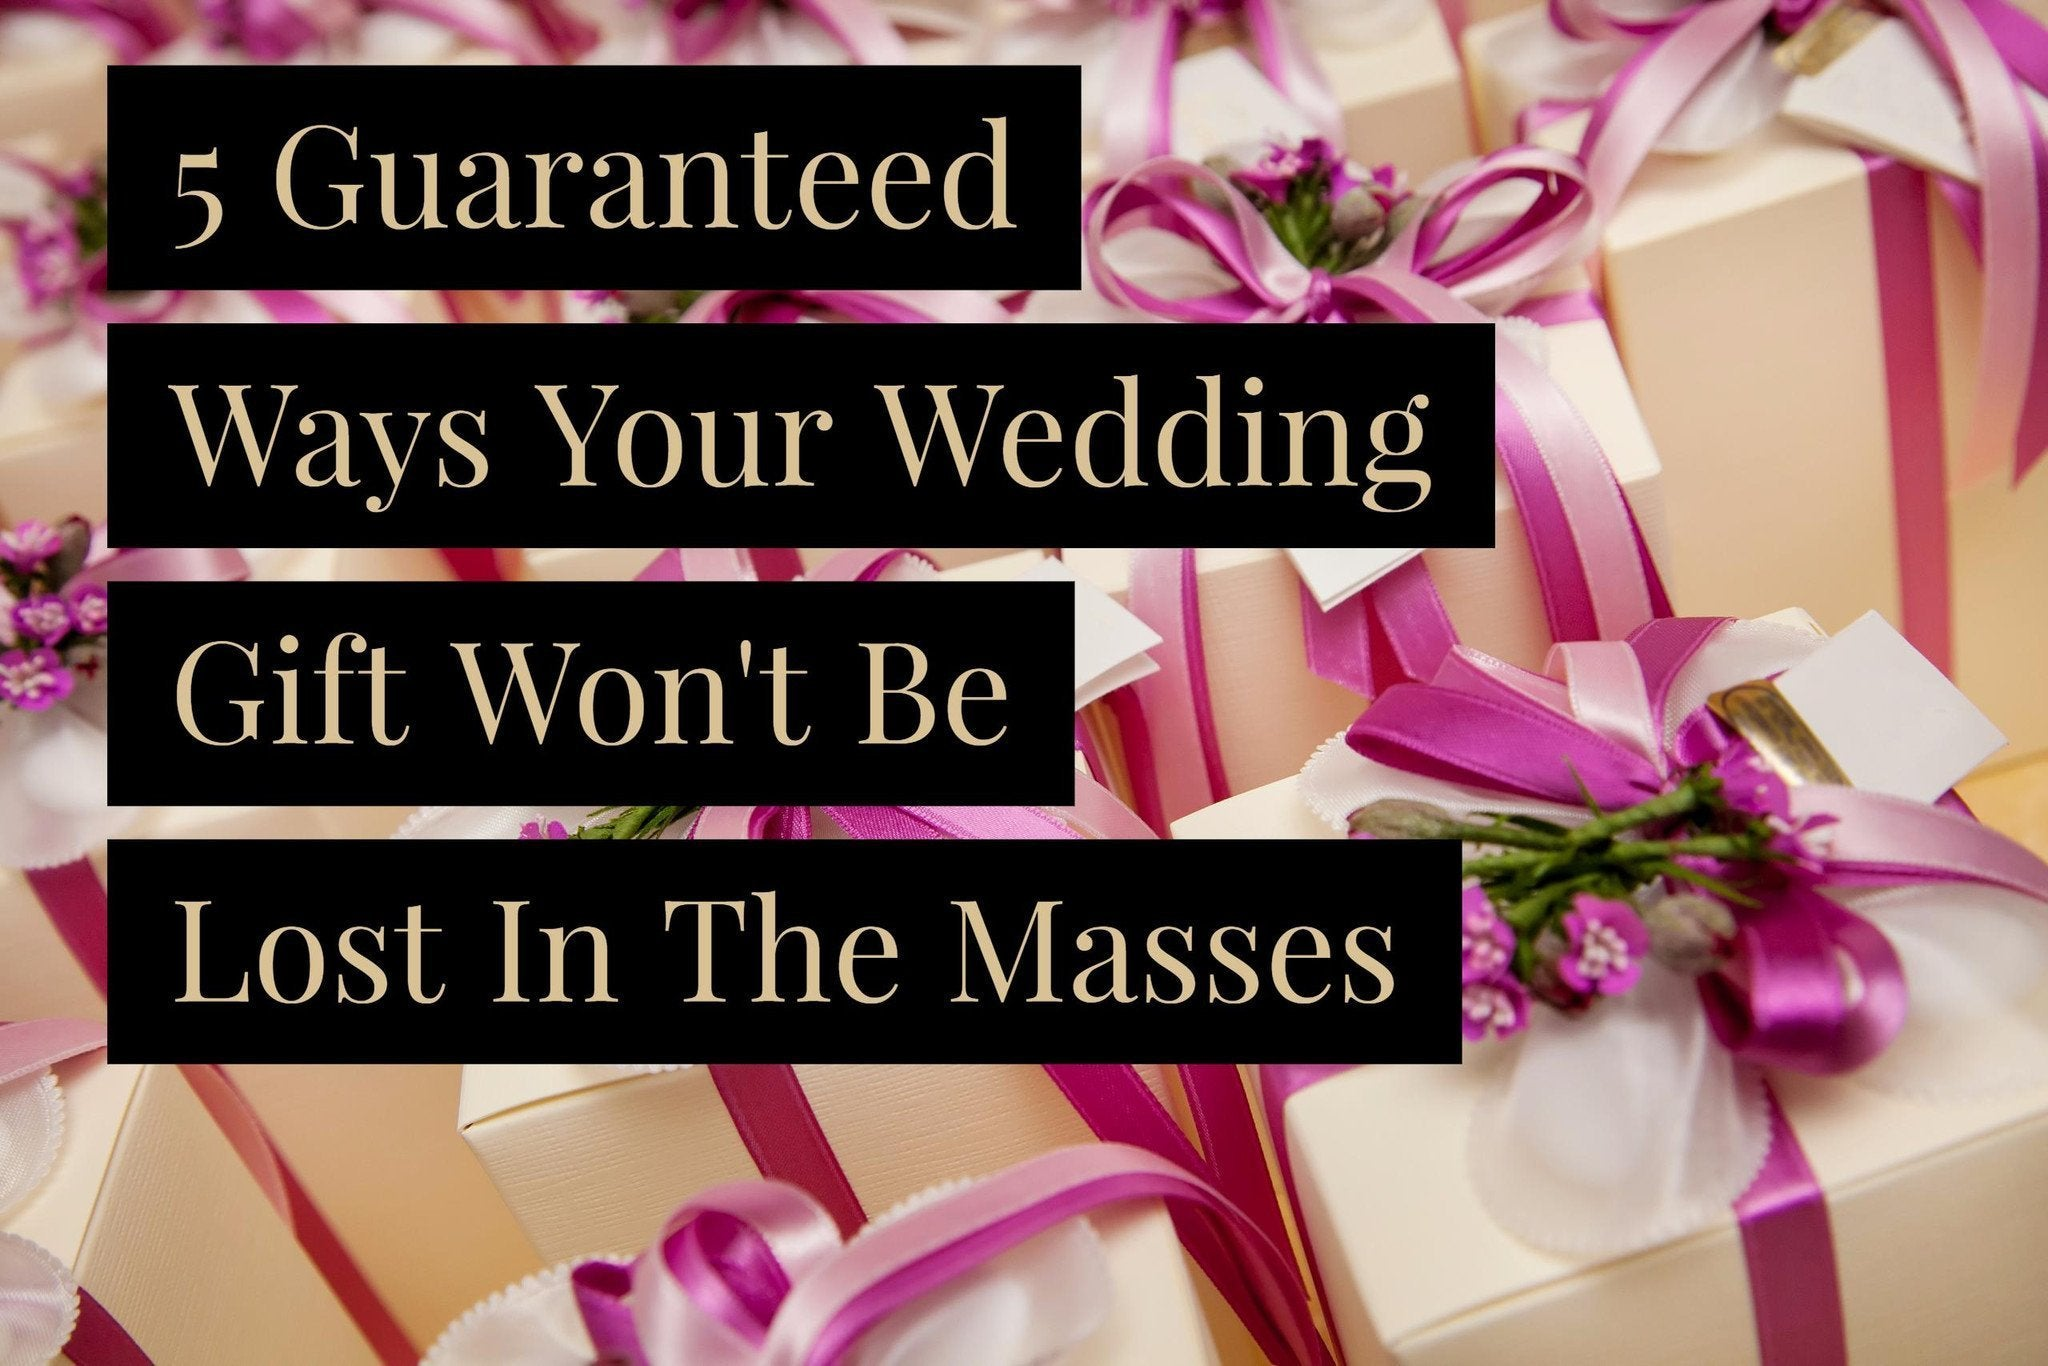 5 Guaranteed Ways Your Wedding Gift Won't Be Lost In The Masses